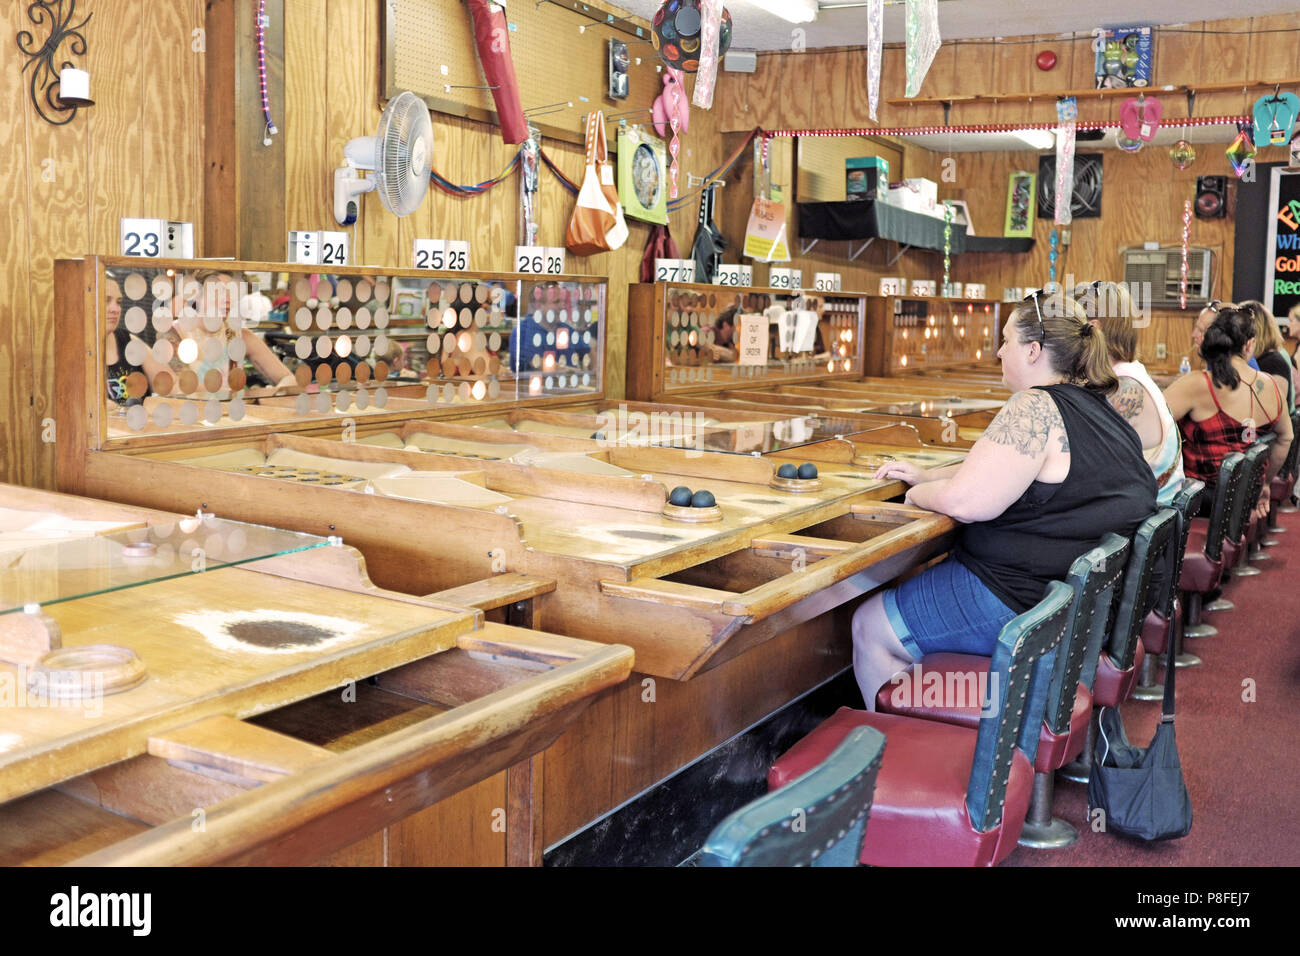 Old-school amusement game of Fascination is played in a Fascination parlor in Geneva-on-the-Lake, Ohio, USA. - Stock Image